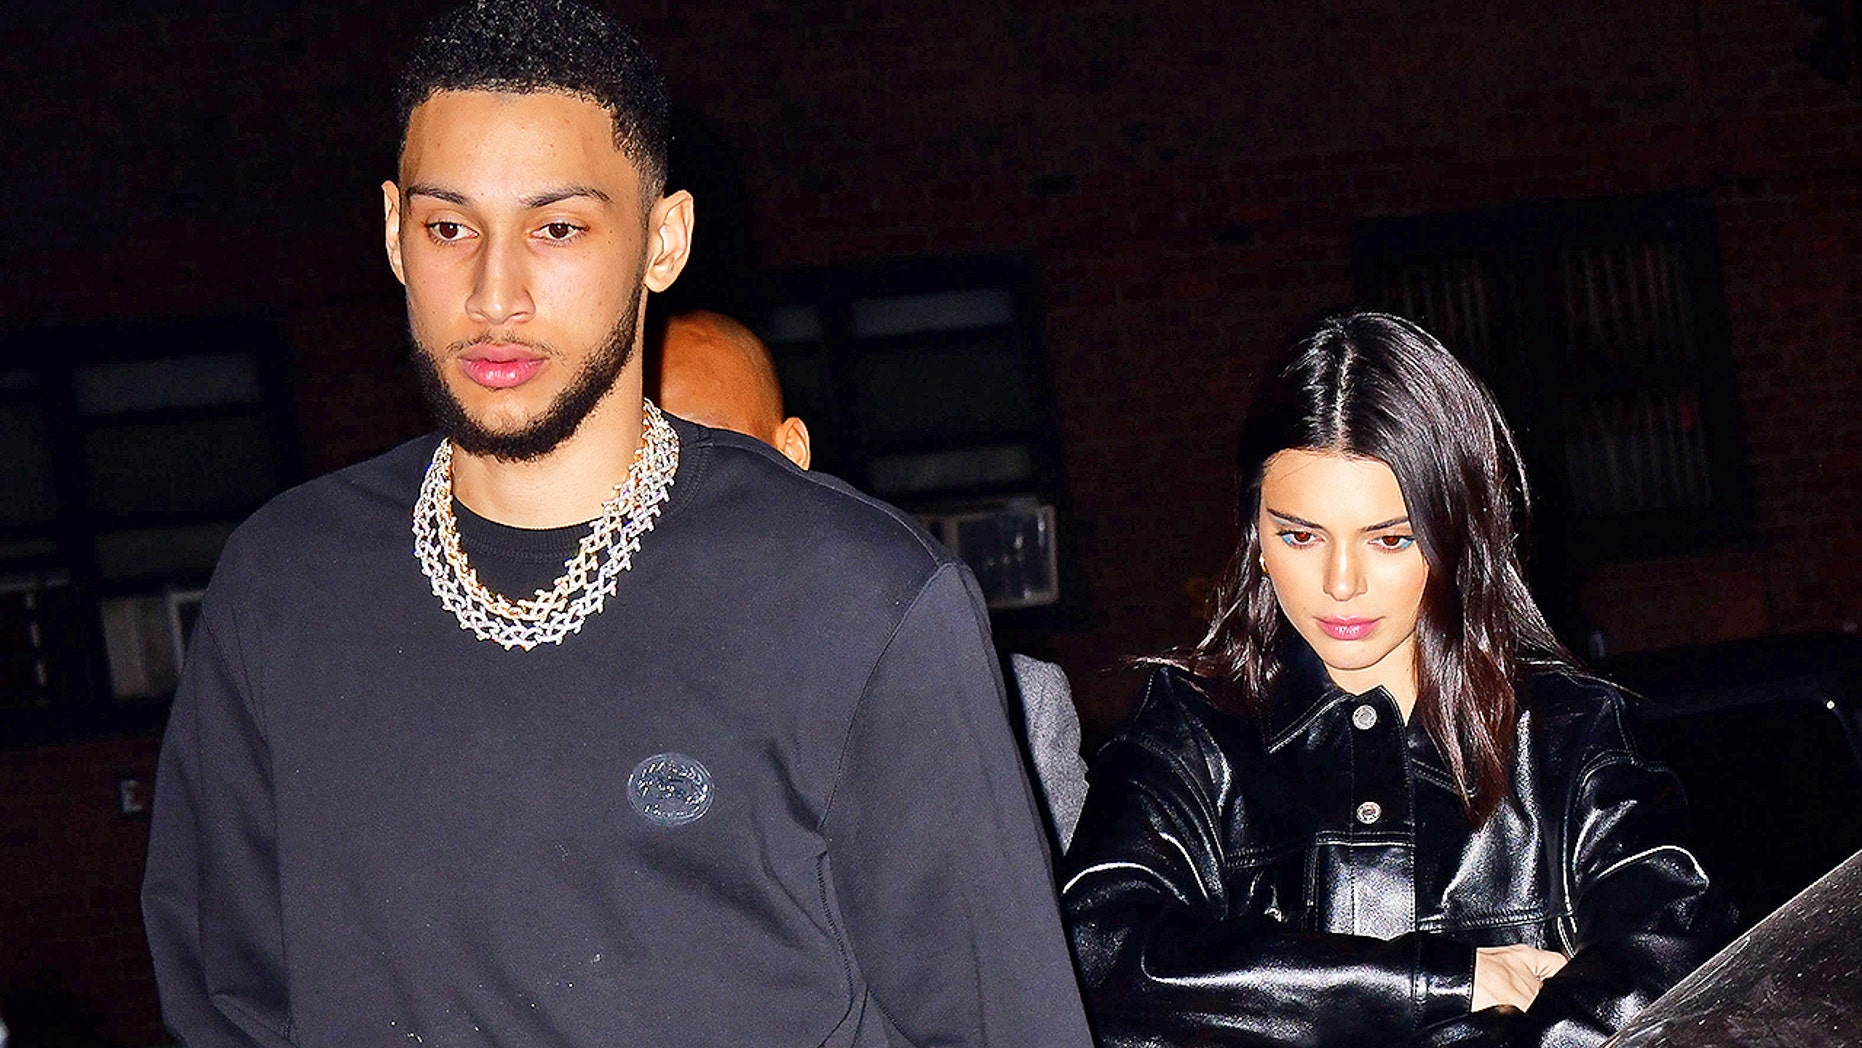 Ben Simmons and Kendall Jenner step out for Valentine's Day in New York City. Jenner confirmed their romance but keeps it generally private.